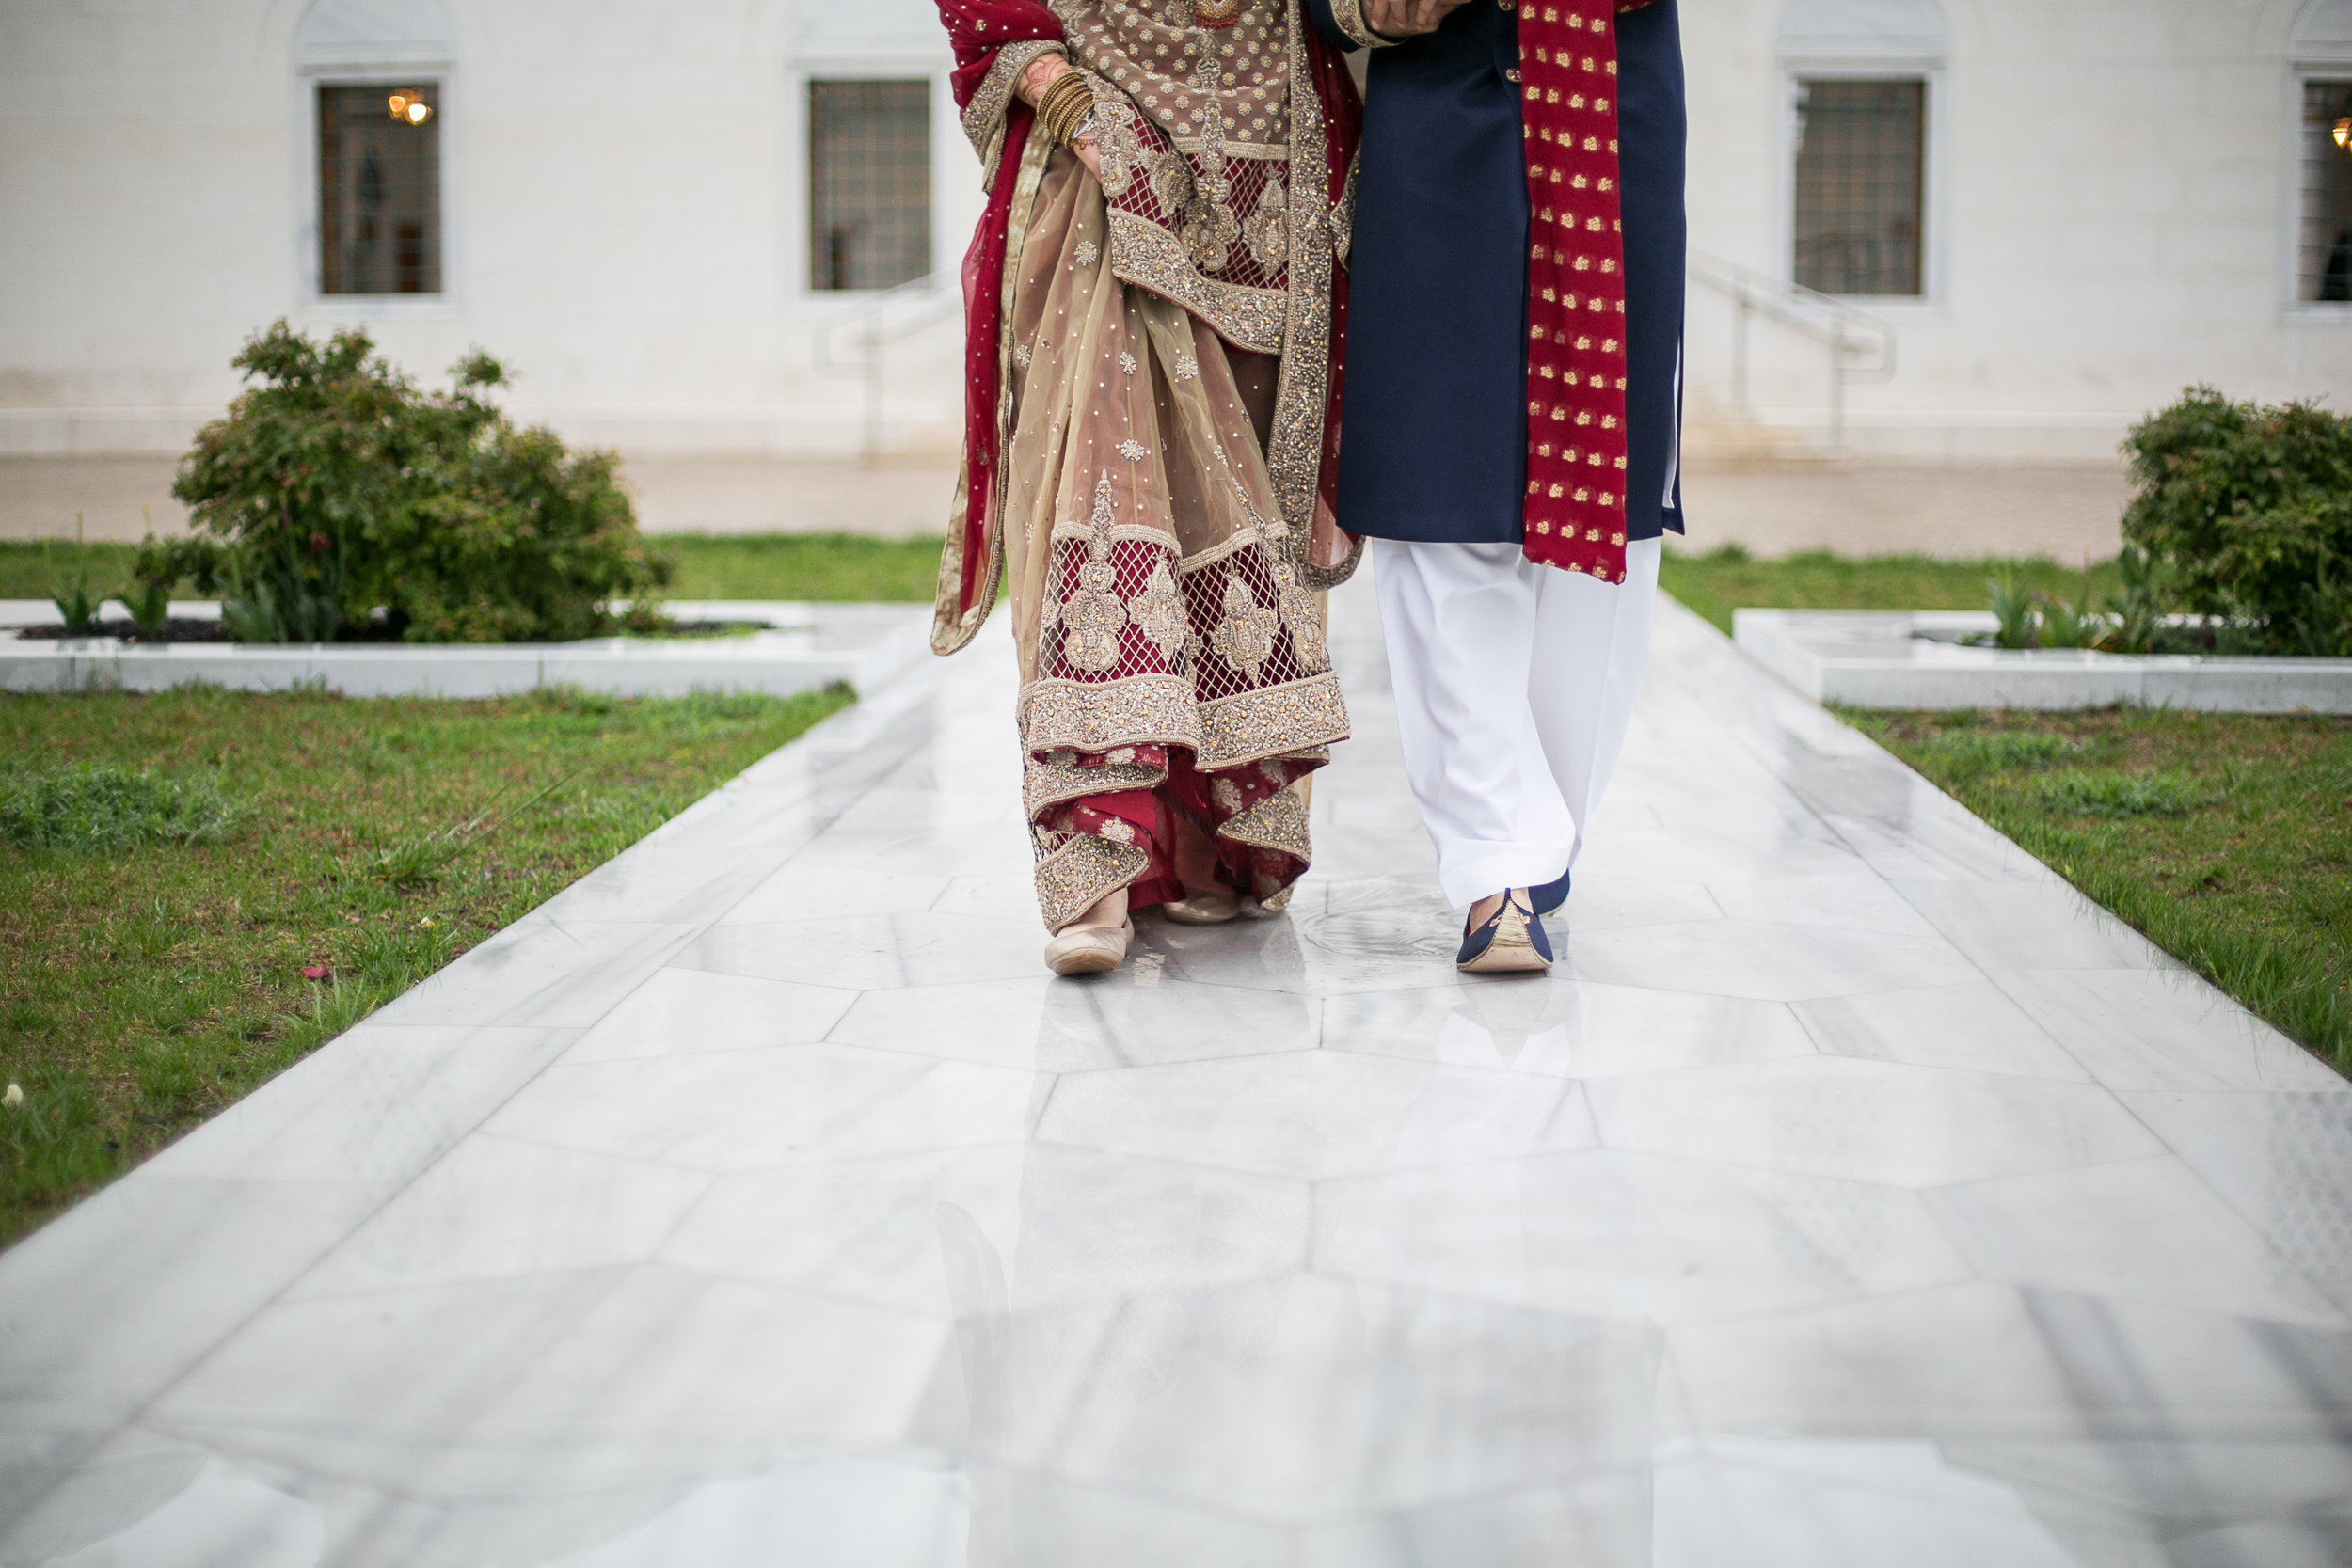 """umar & wardah: - """"A phenomenal photographer who takes every picture with care. Really caters to individual and customizable preferences. We really loved our experience with Ayesha and would recommend her to any wedding event--she is great especially for traditional/Islamic weddings and will personalize the pictures for families so they can truly cherish their experience, just like we did."""""""